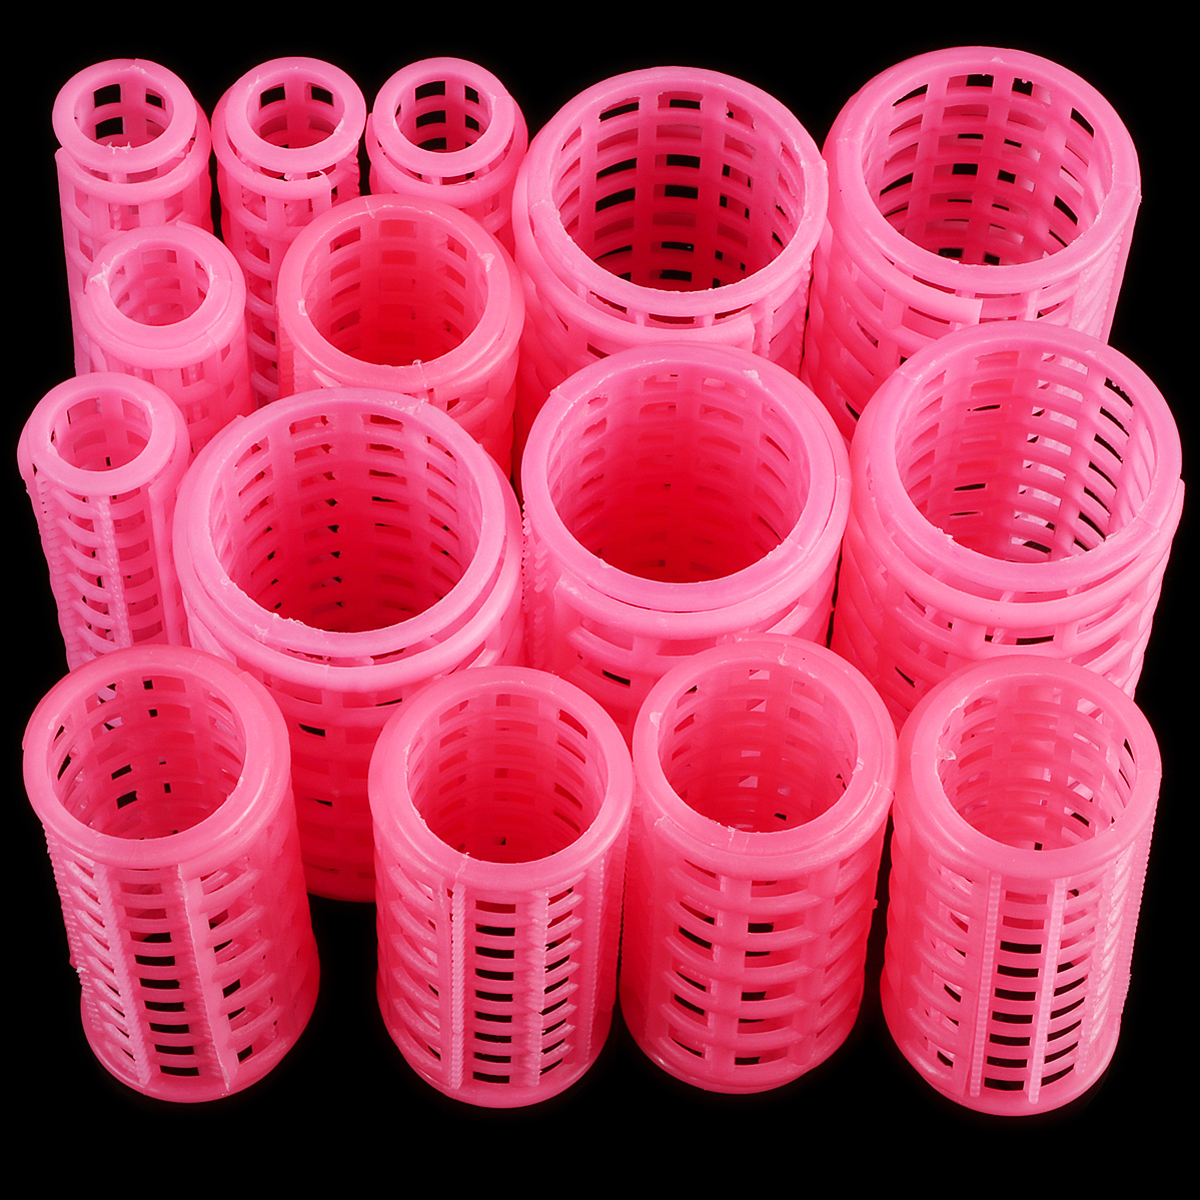 15pcs/set Hair Curler Roller Large Grip Clips Curlers Hairdressing DIY Hair Styling Beauty Tools